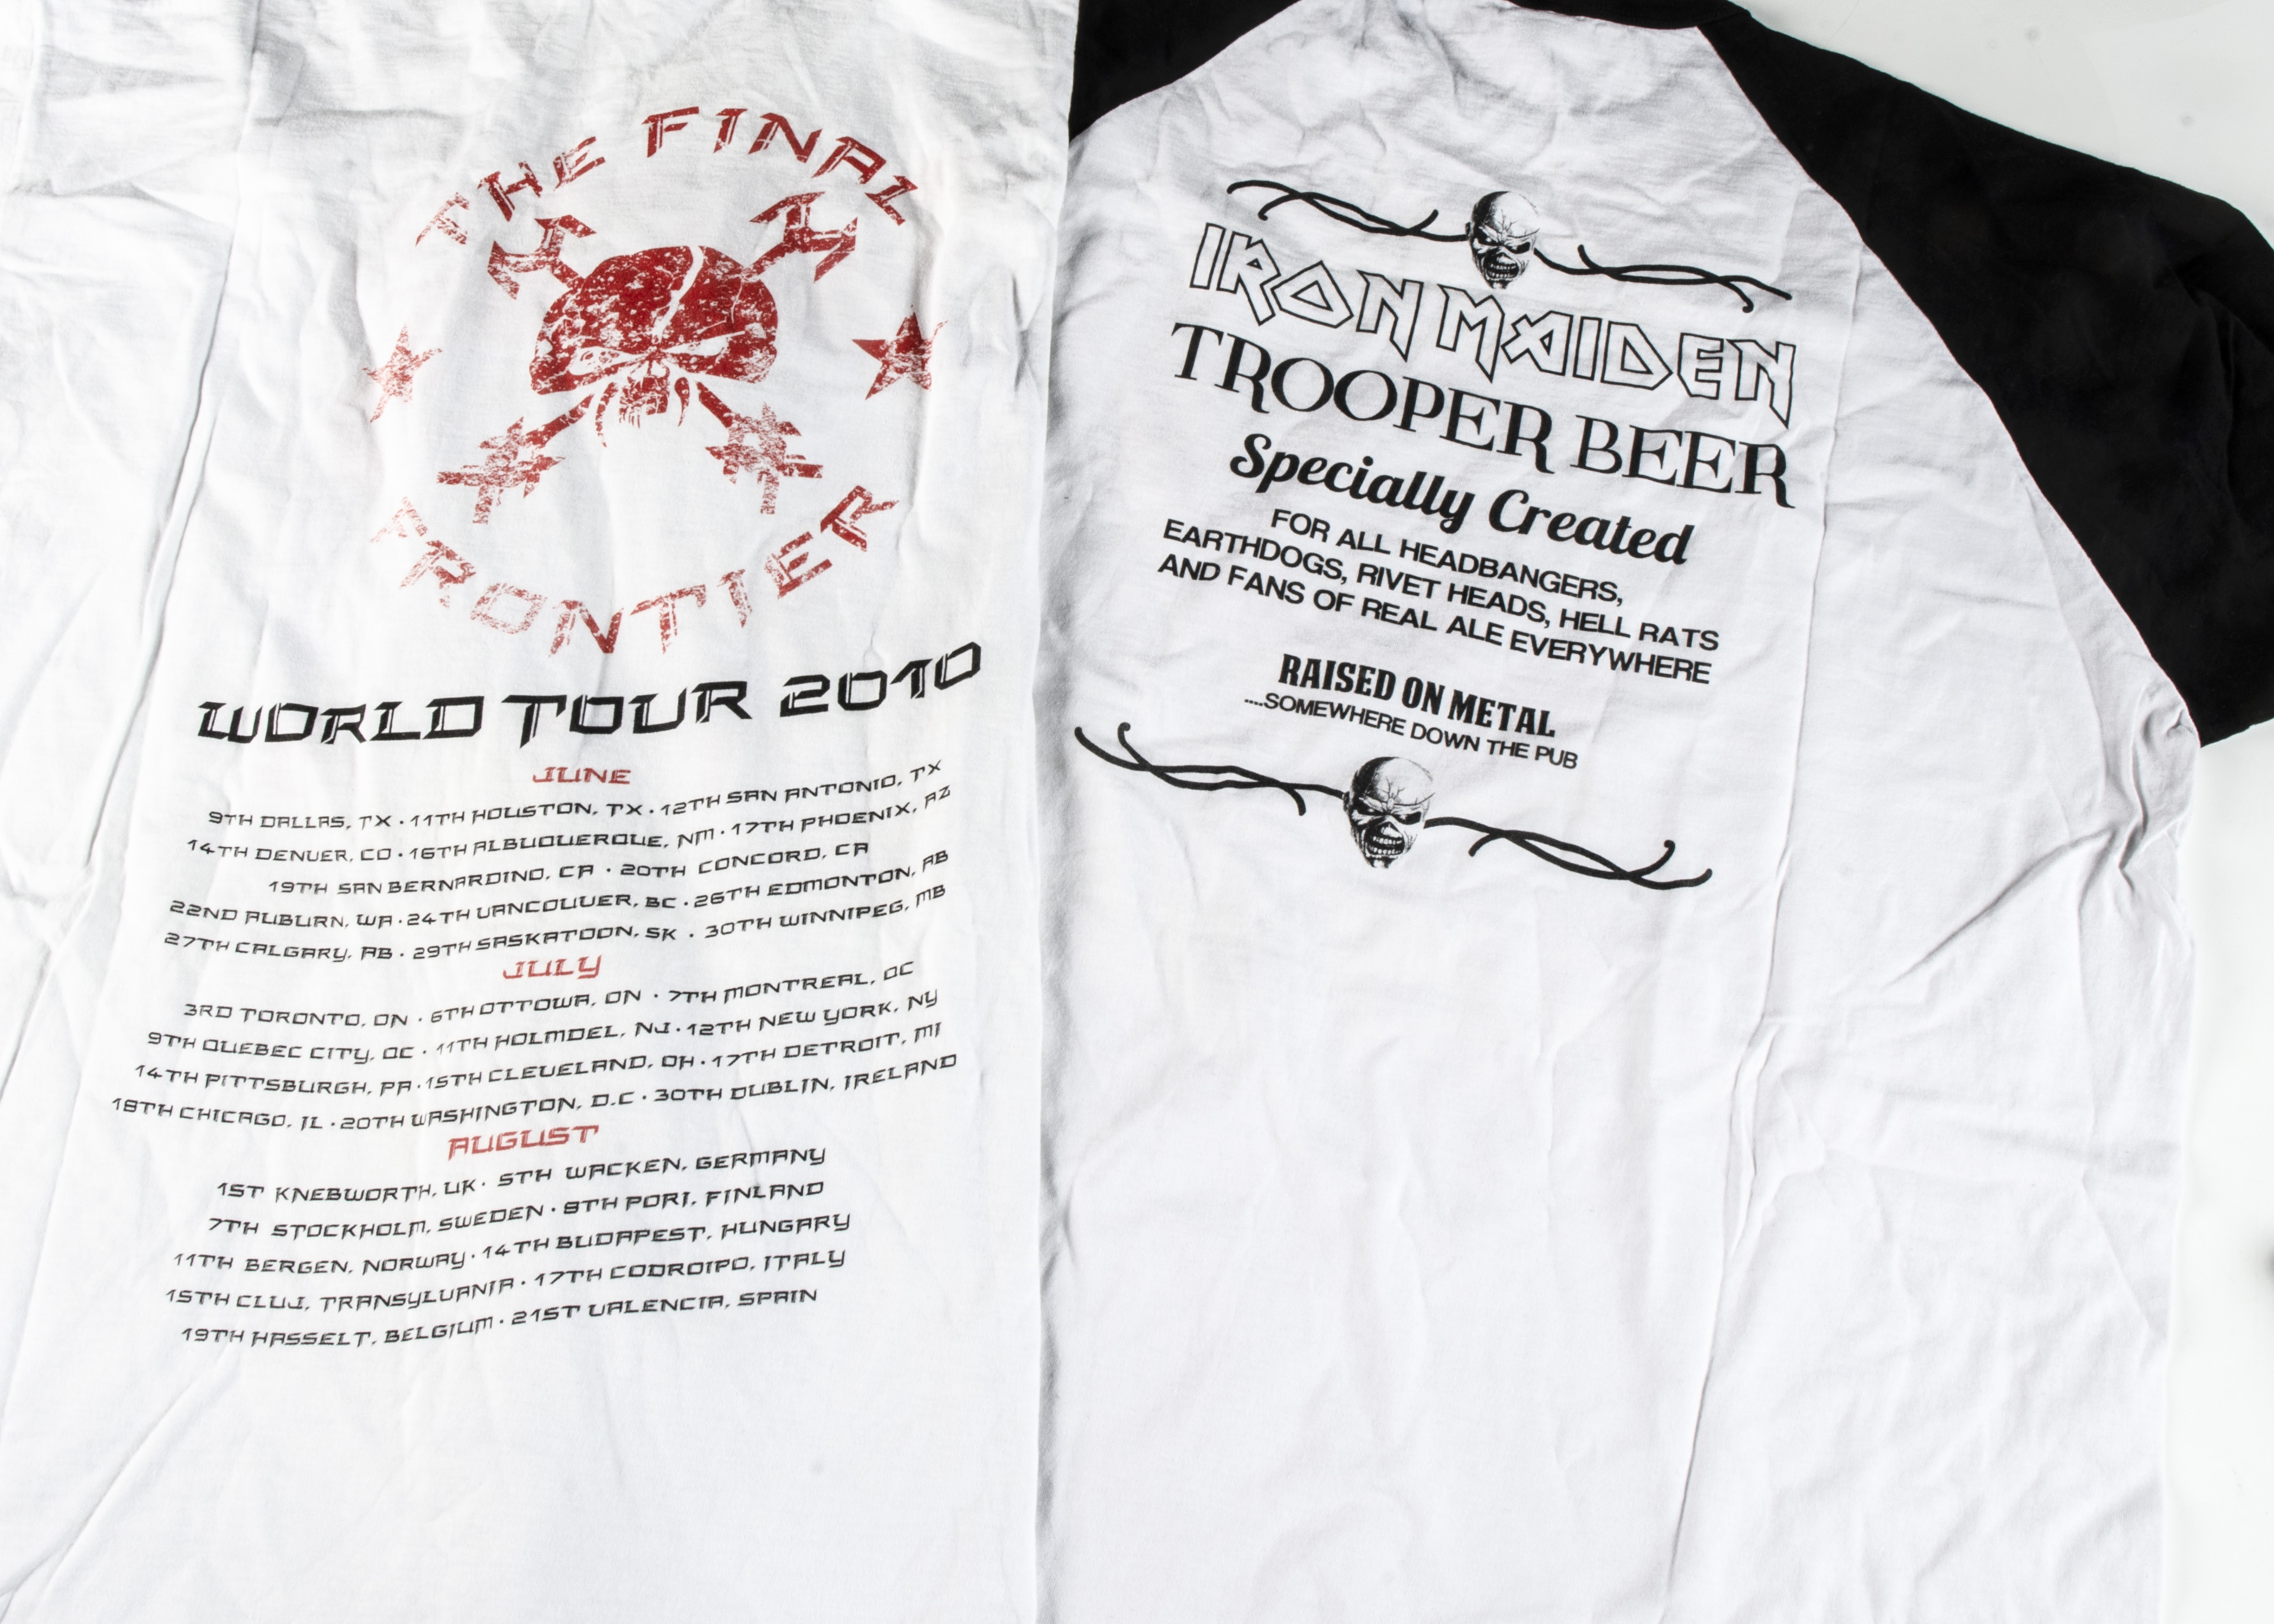 Trooper / Final Frontier 'T' Shirts, a long sleeved 'Trooper' shirt with image on front and text - Image 2 of 2